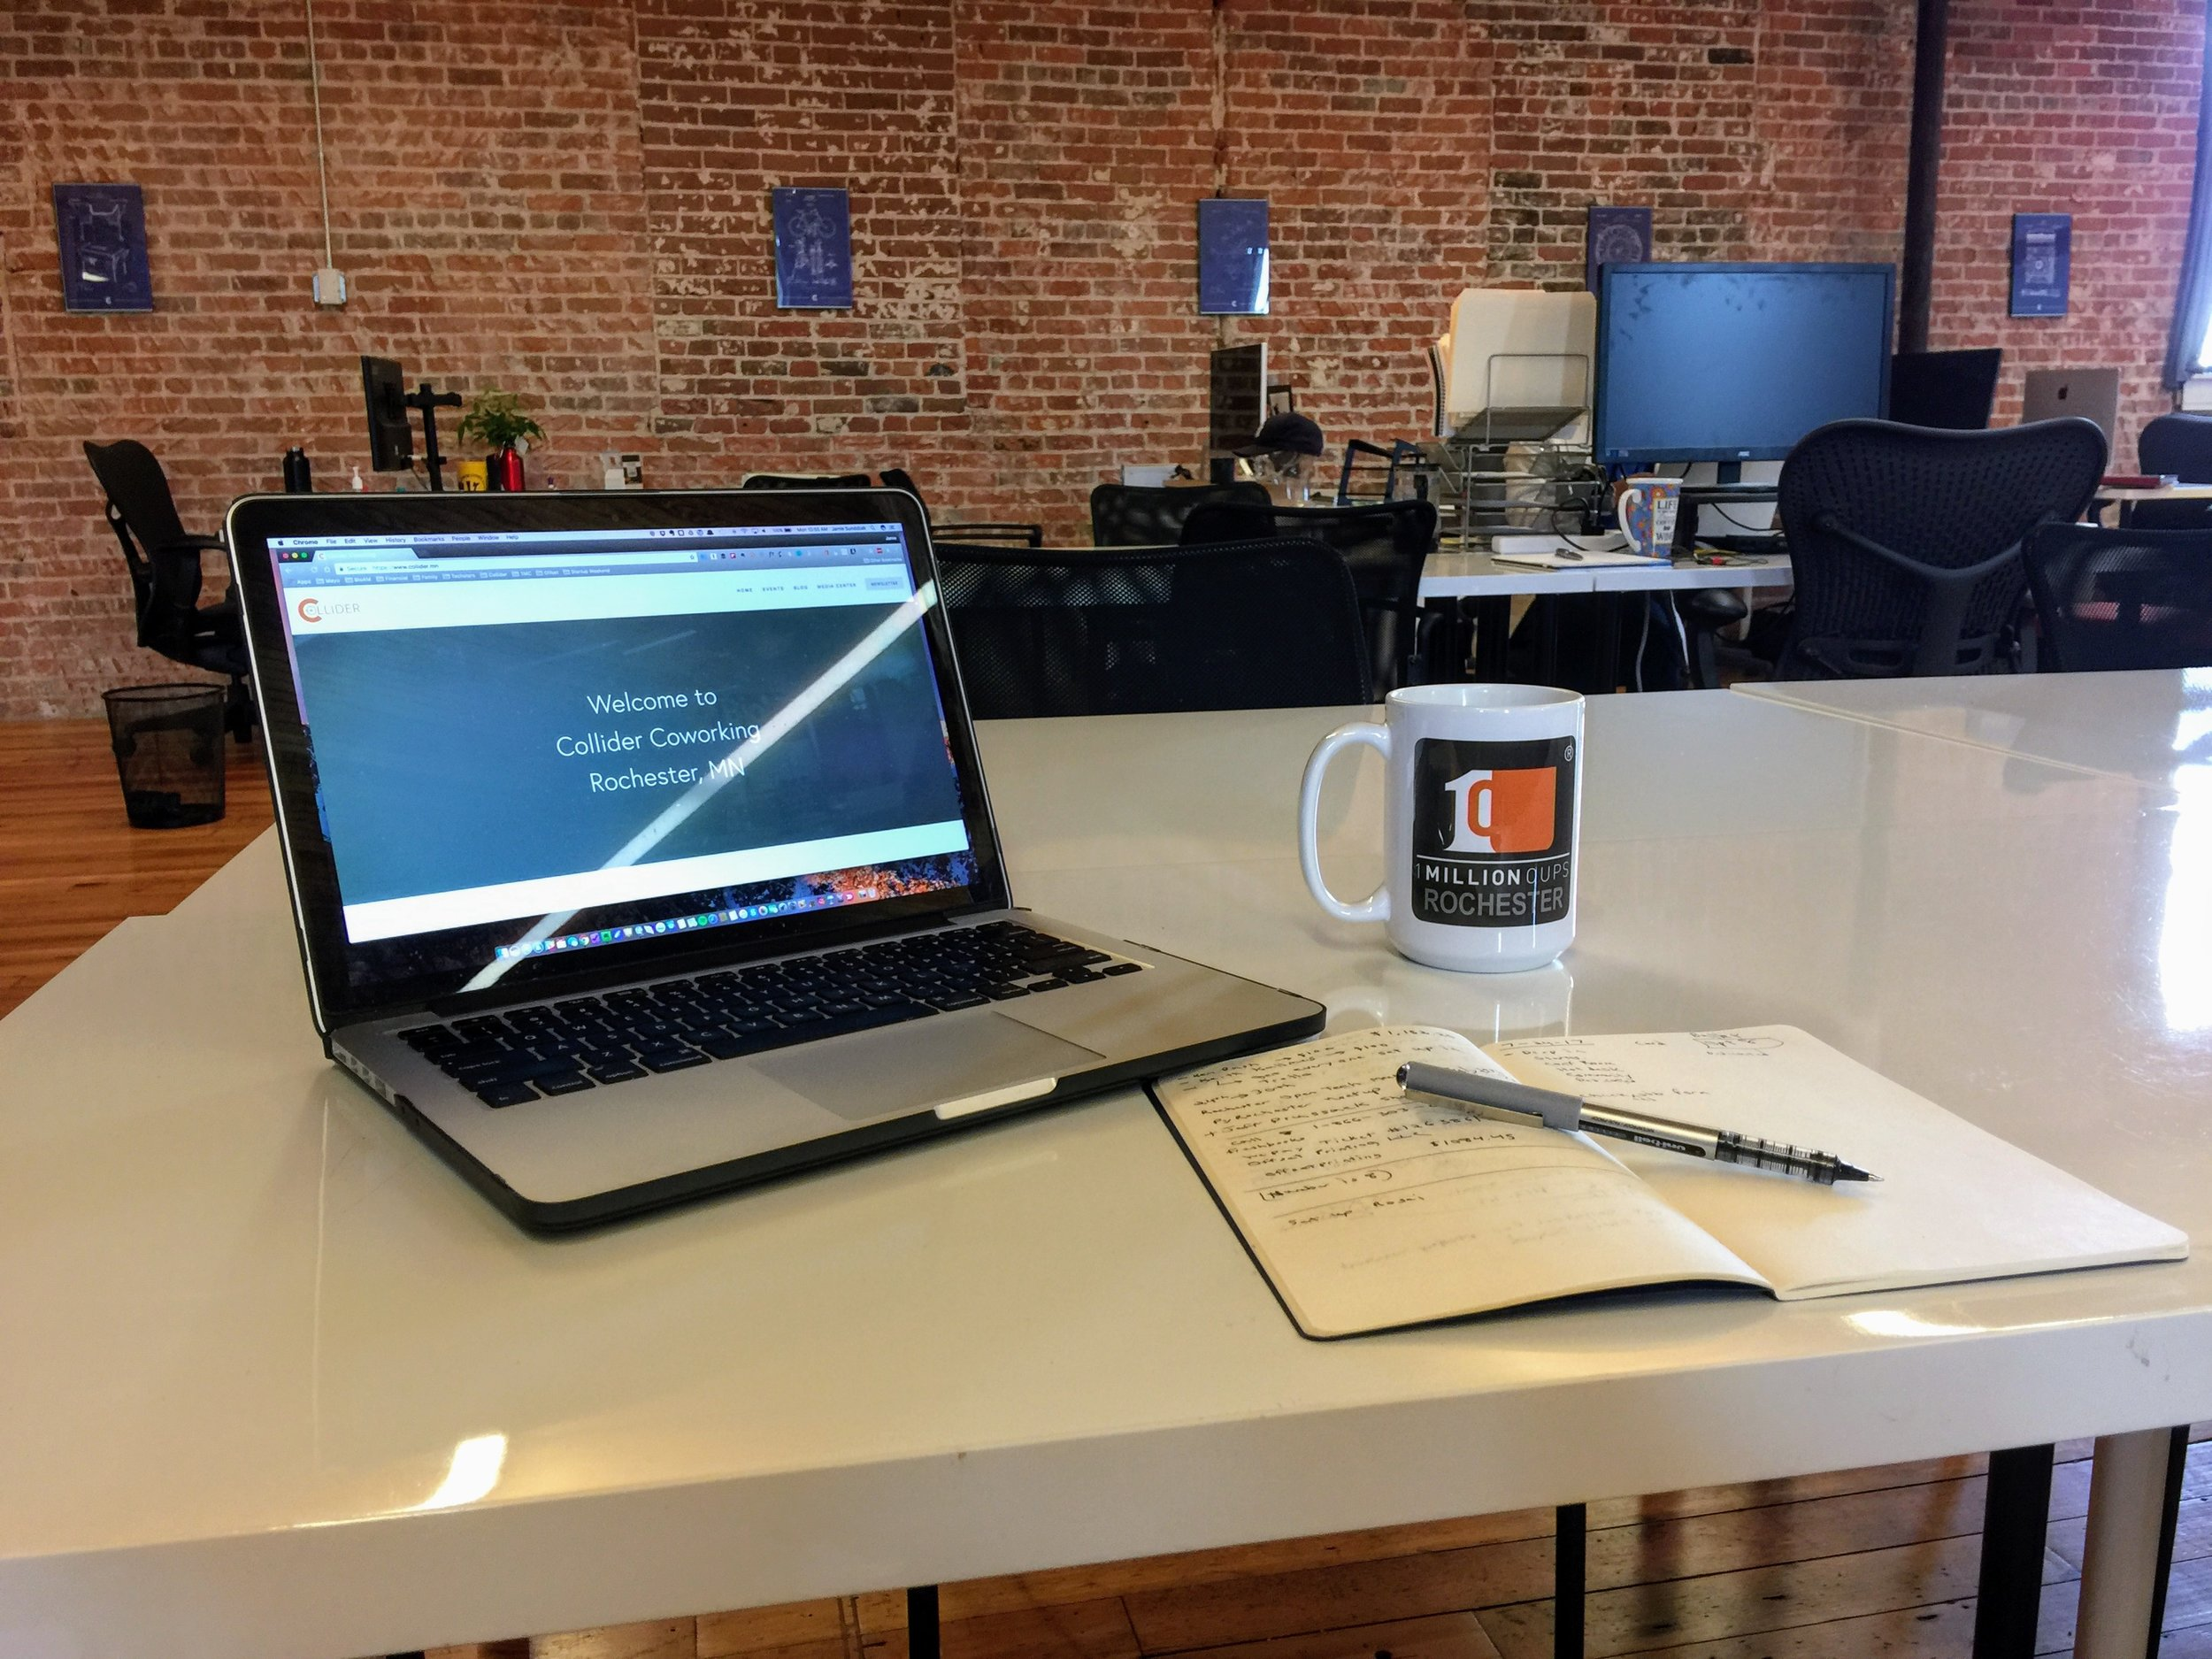 Hot Desk - $235/month• Use of a hot desk at Collider with 24/7 access• Access to Quiet Rooms and Conference Rooms• Access to private Slack channel for members